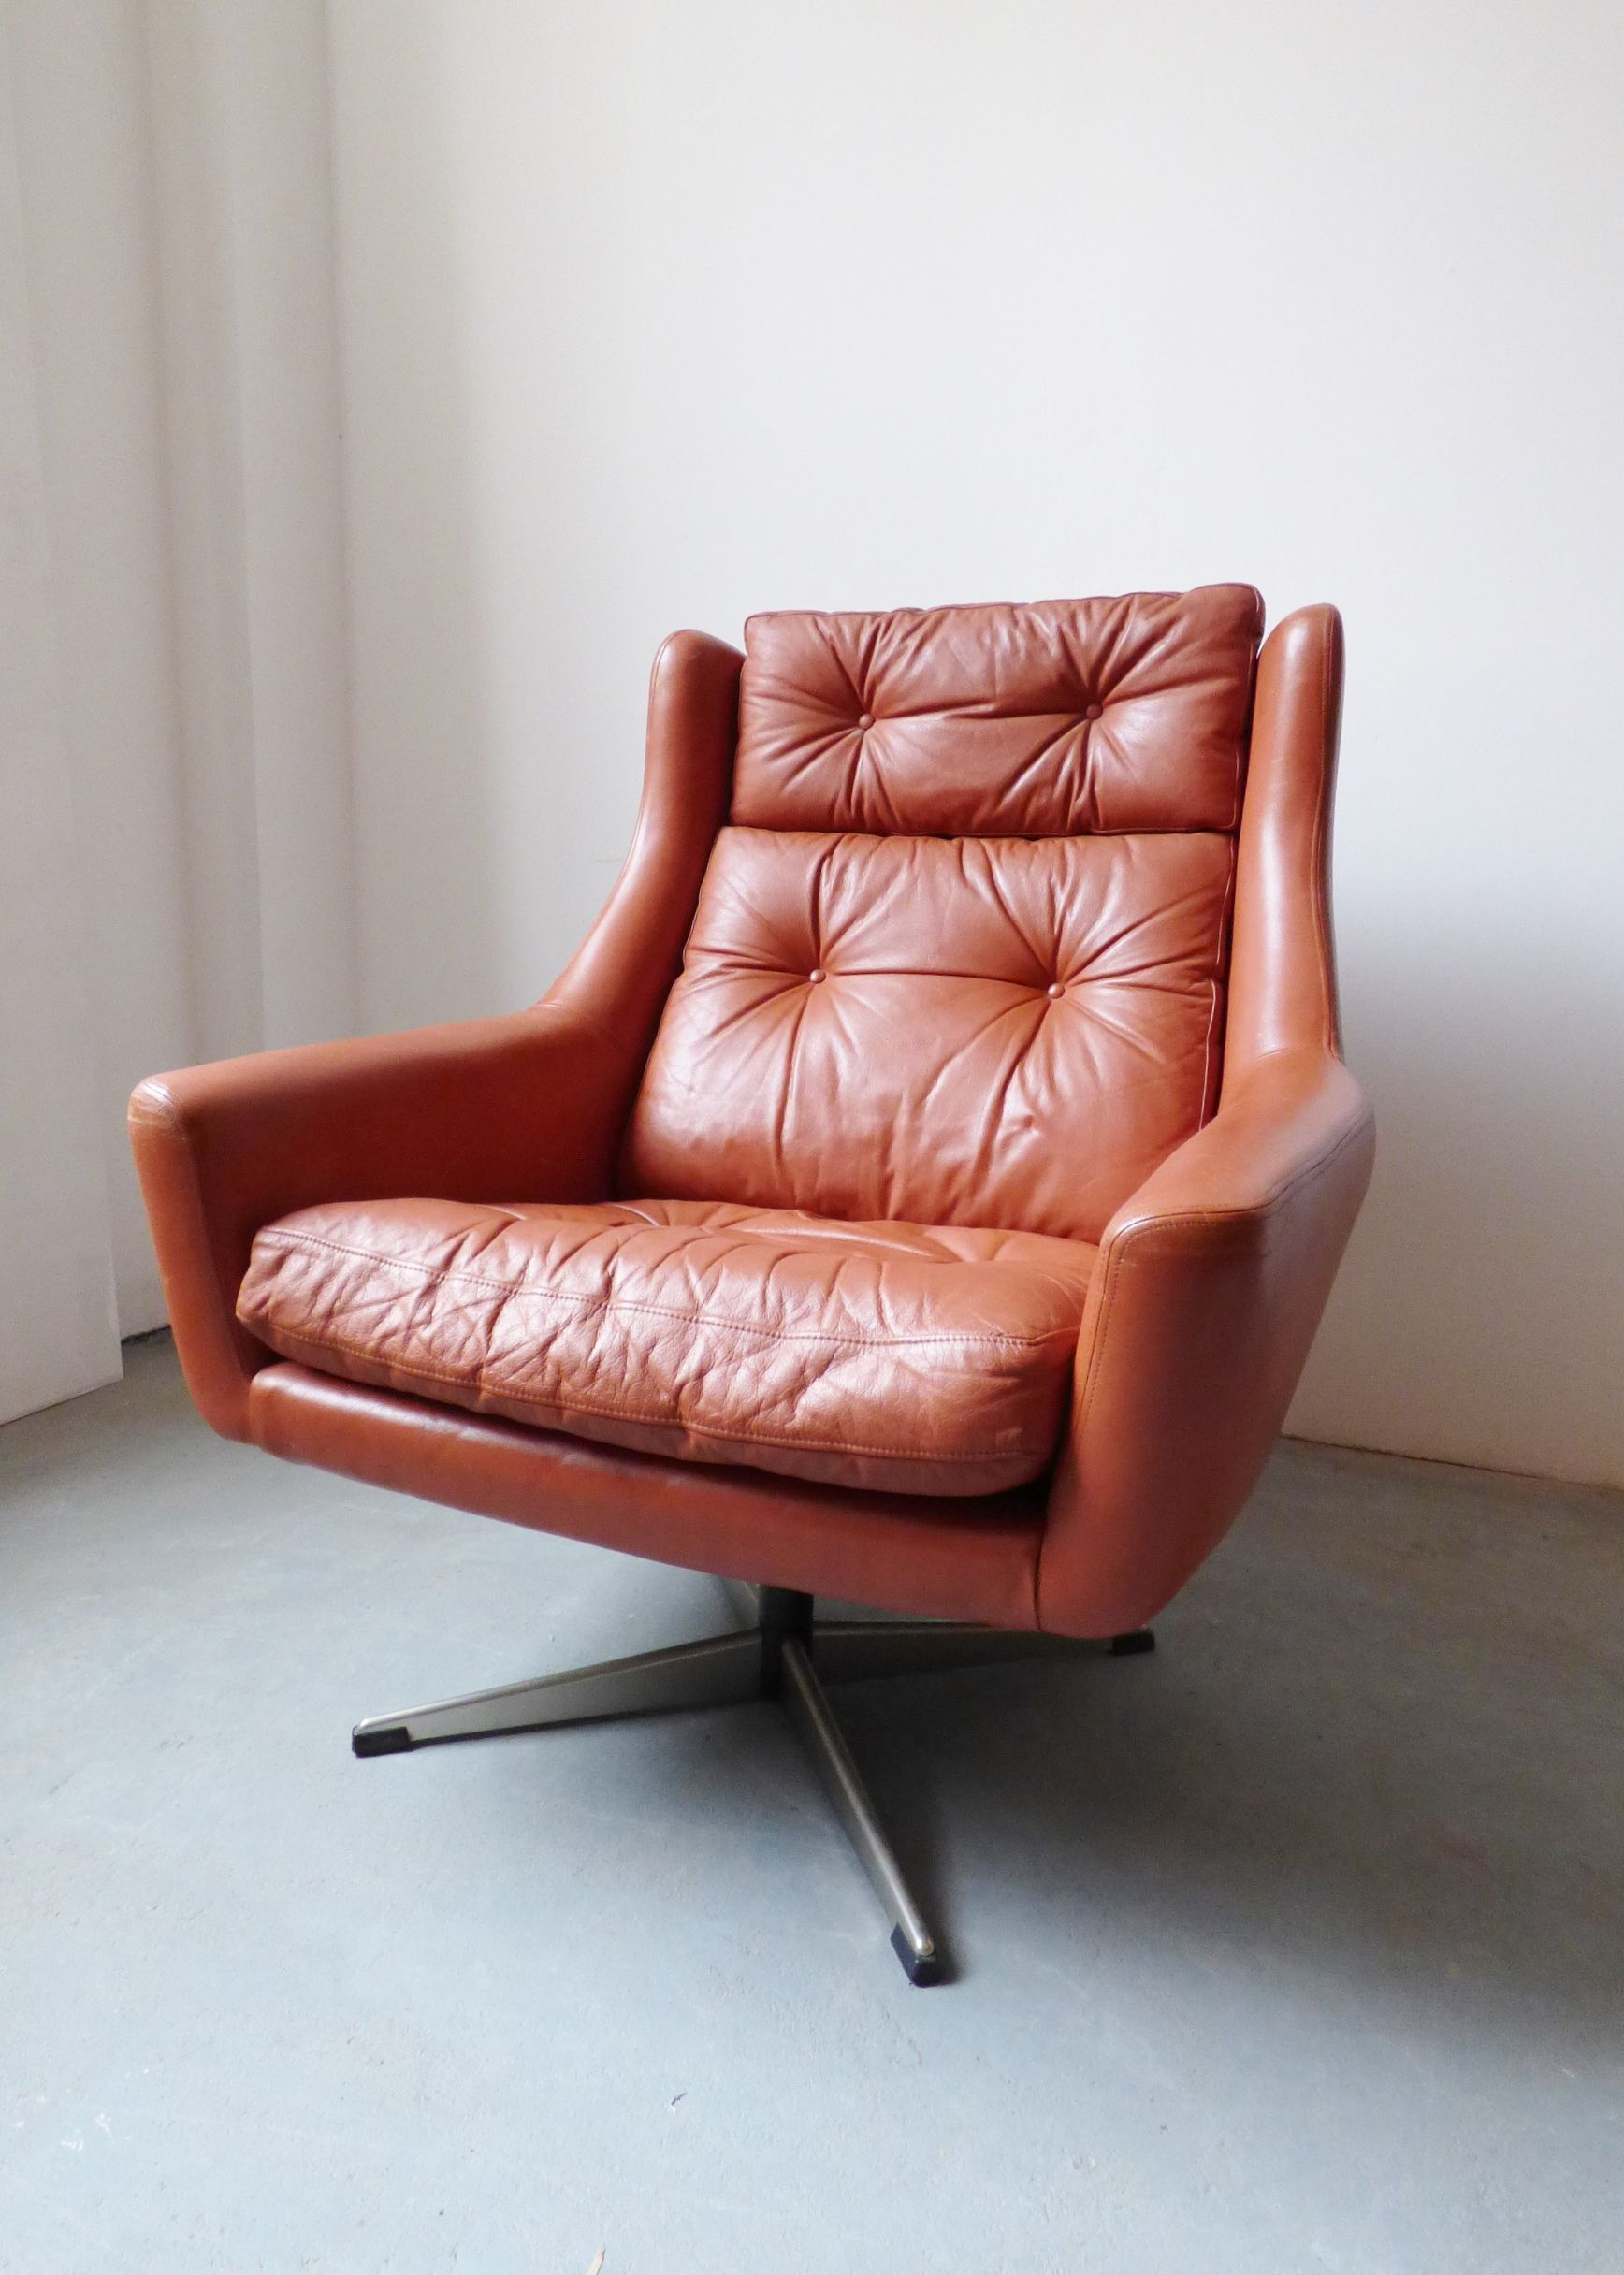 Red Leather Swivel Chair 1960s Danish Red Leather Swivel Chair Furniture Leather Swivel